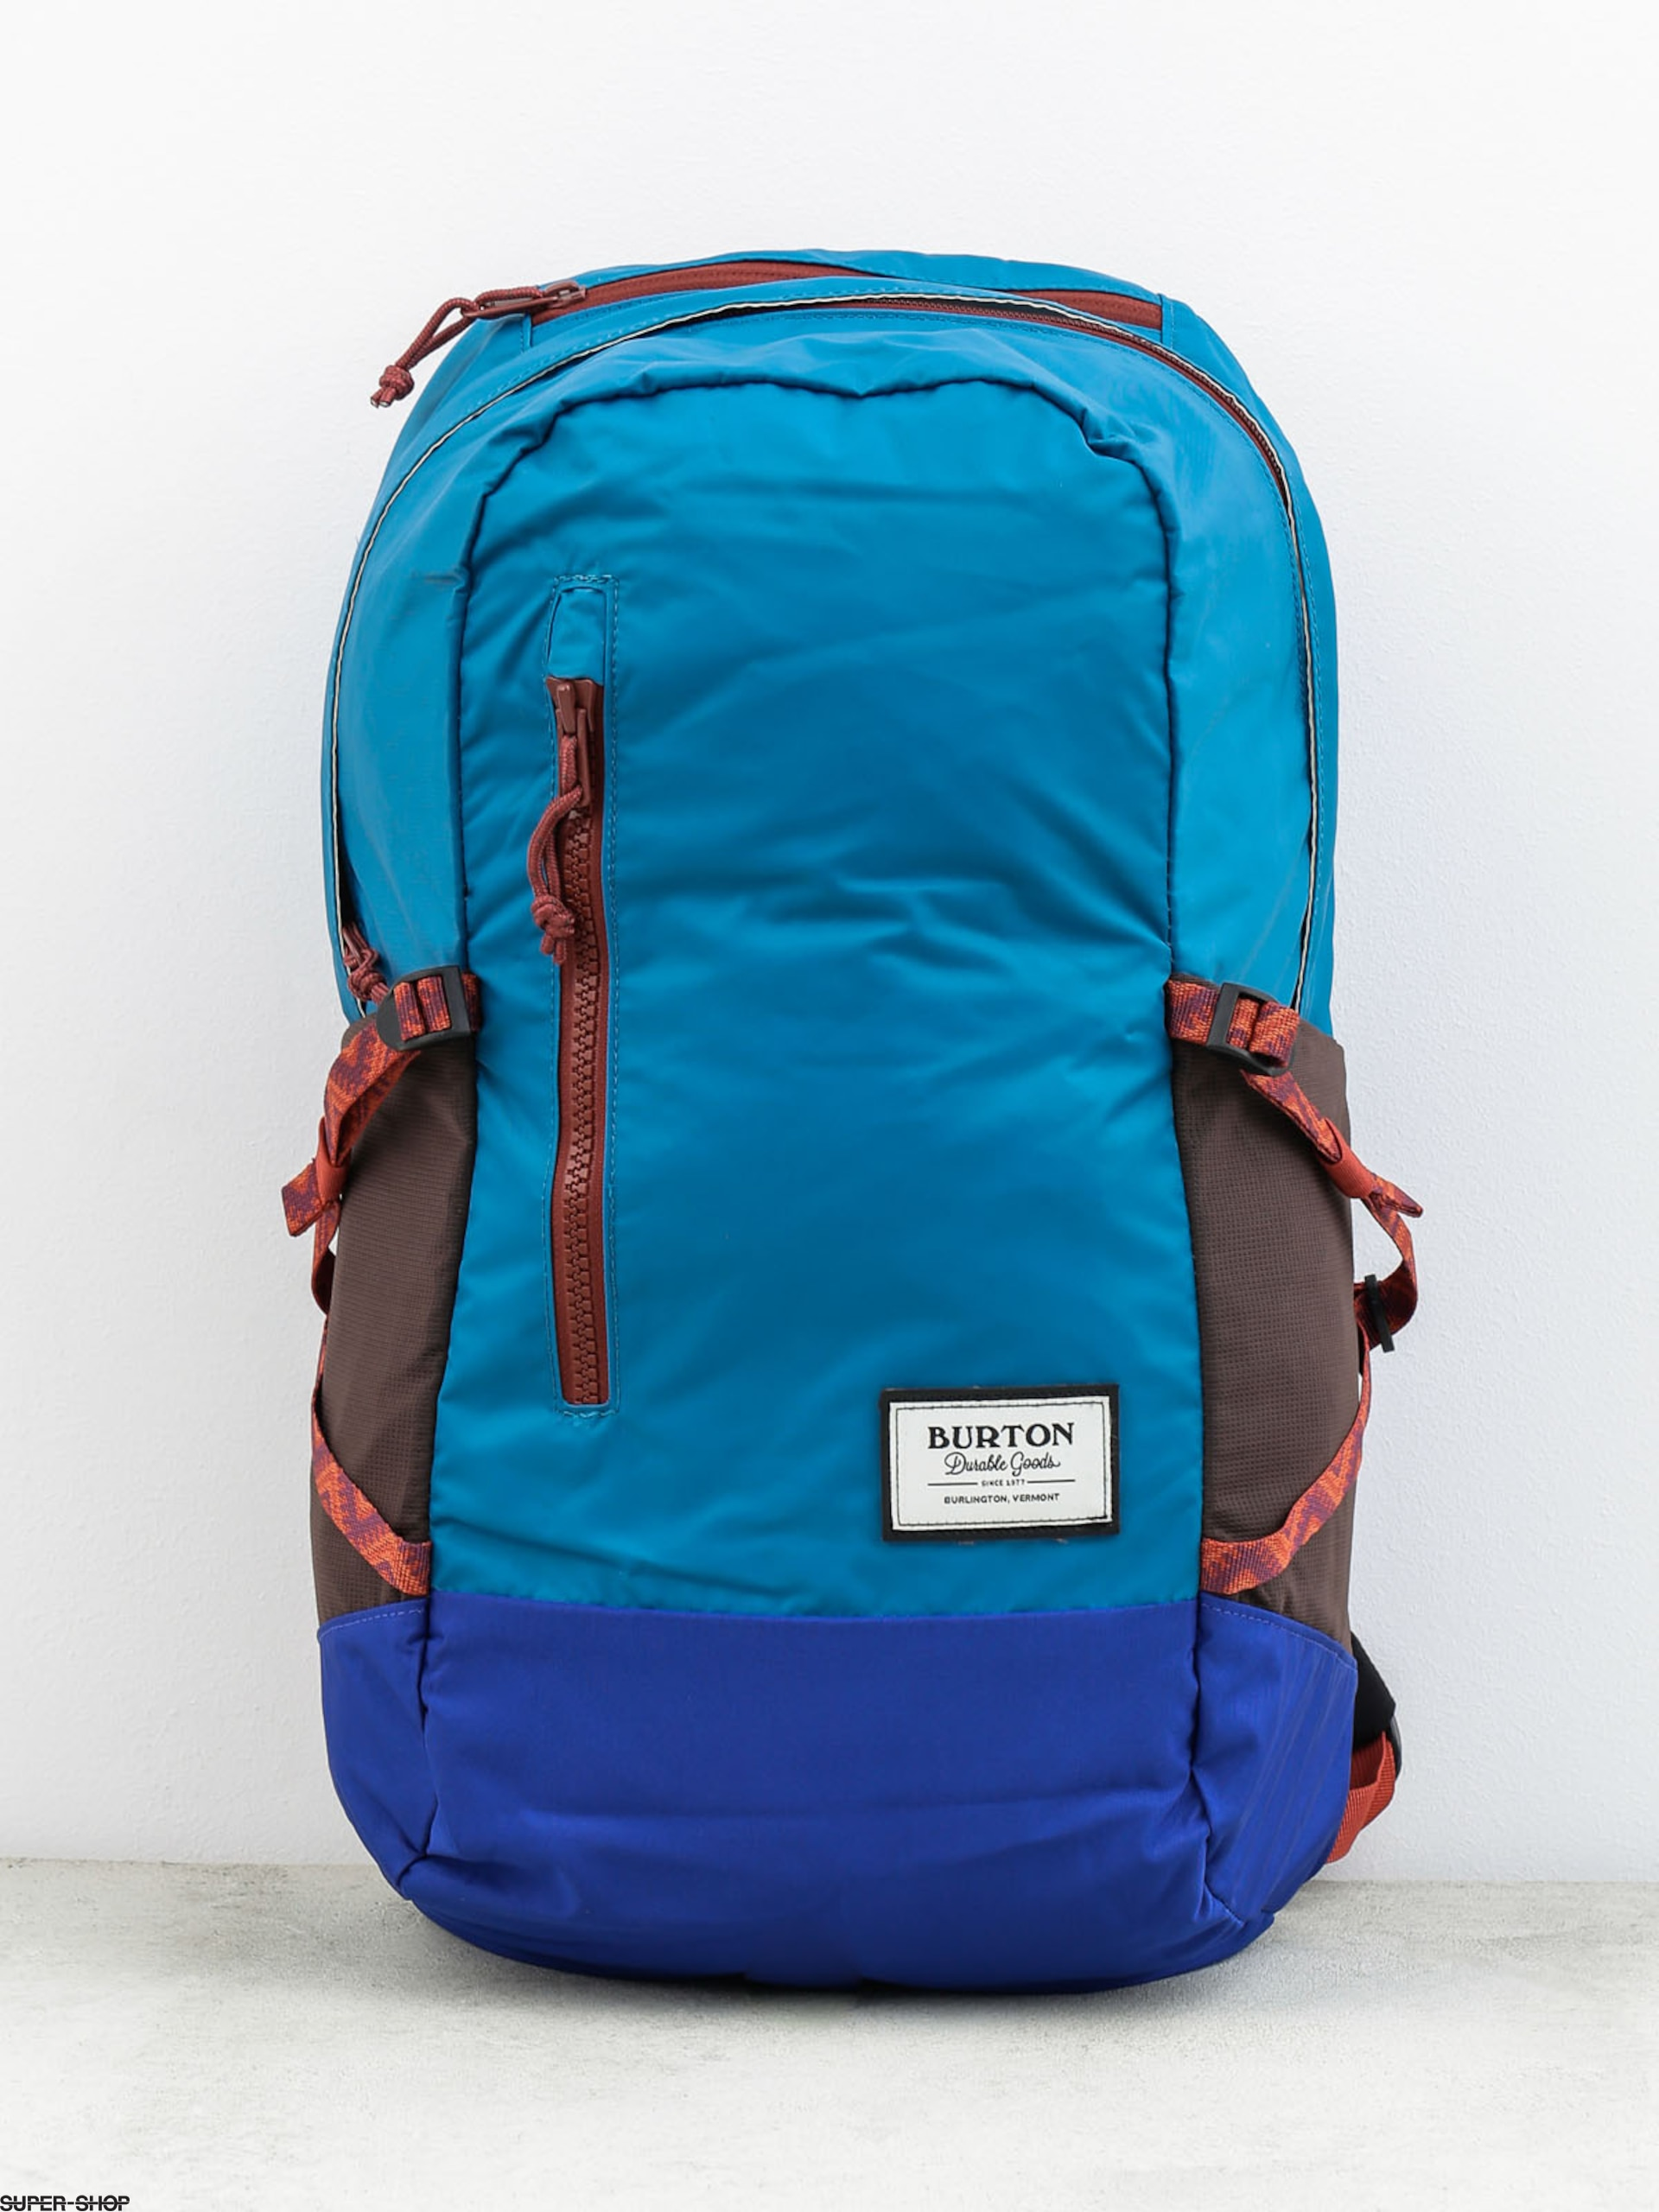 Burton Backpack Wms Prospect (jaded flight satin)